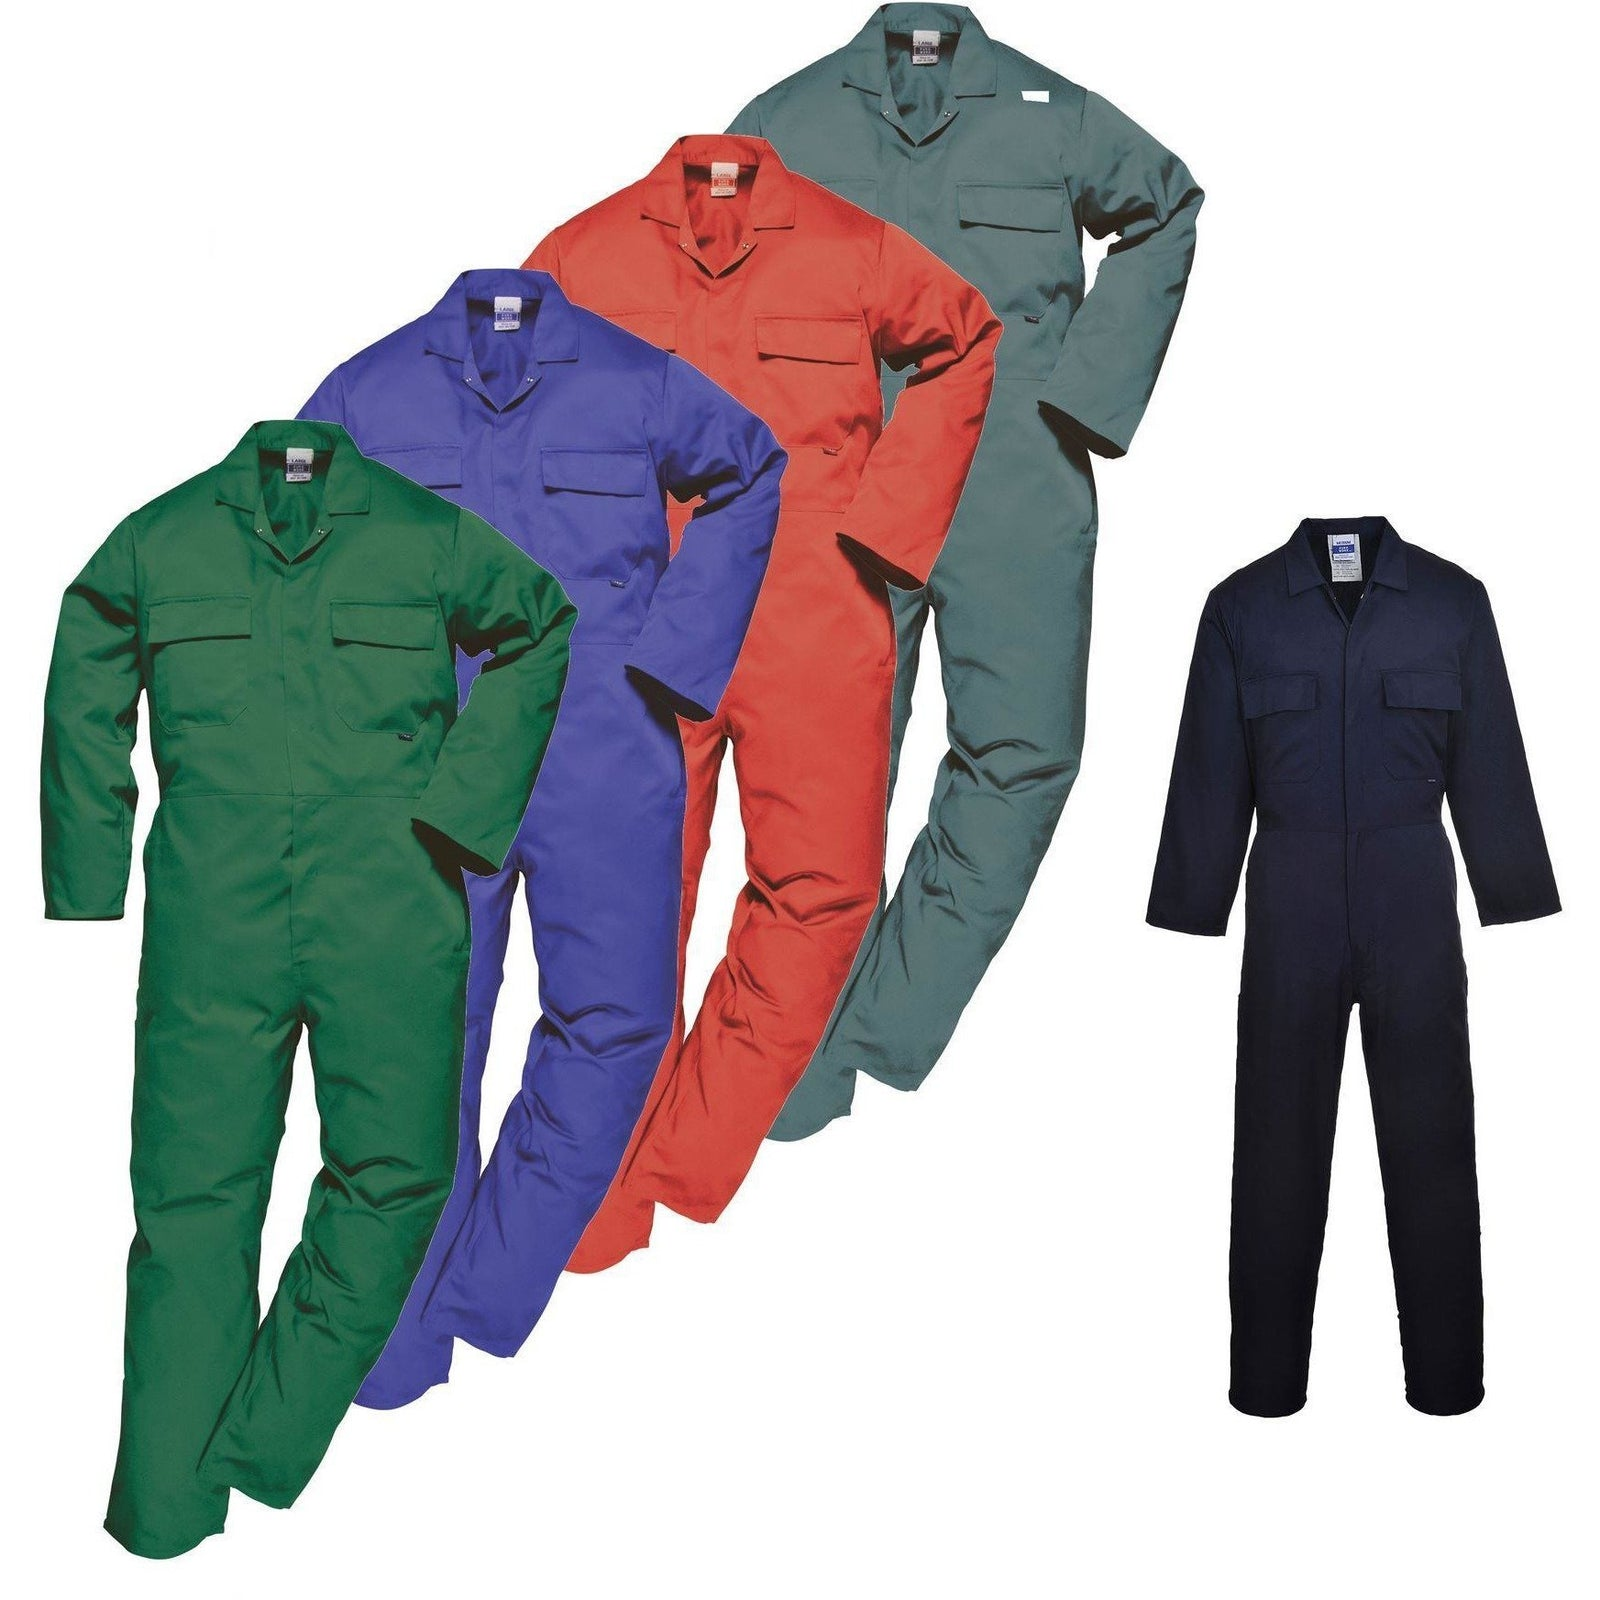 Portwest Euro Work Polycotton Coverall S999 - reid outdoors